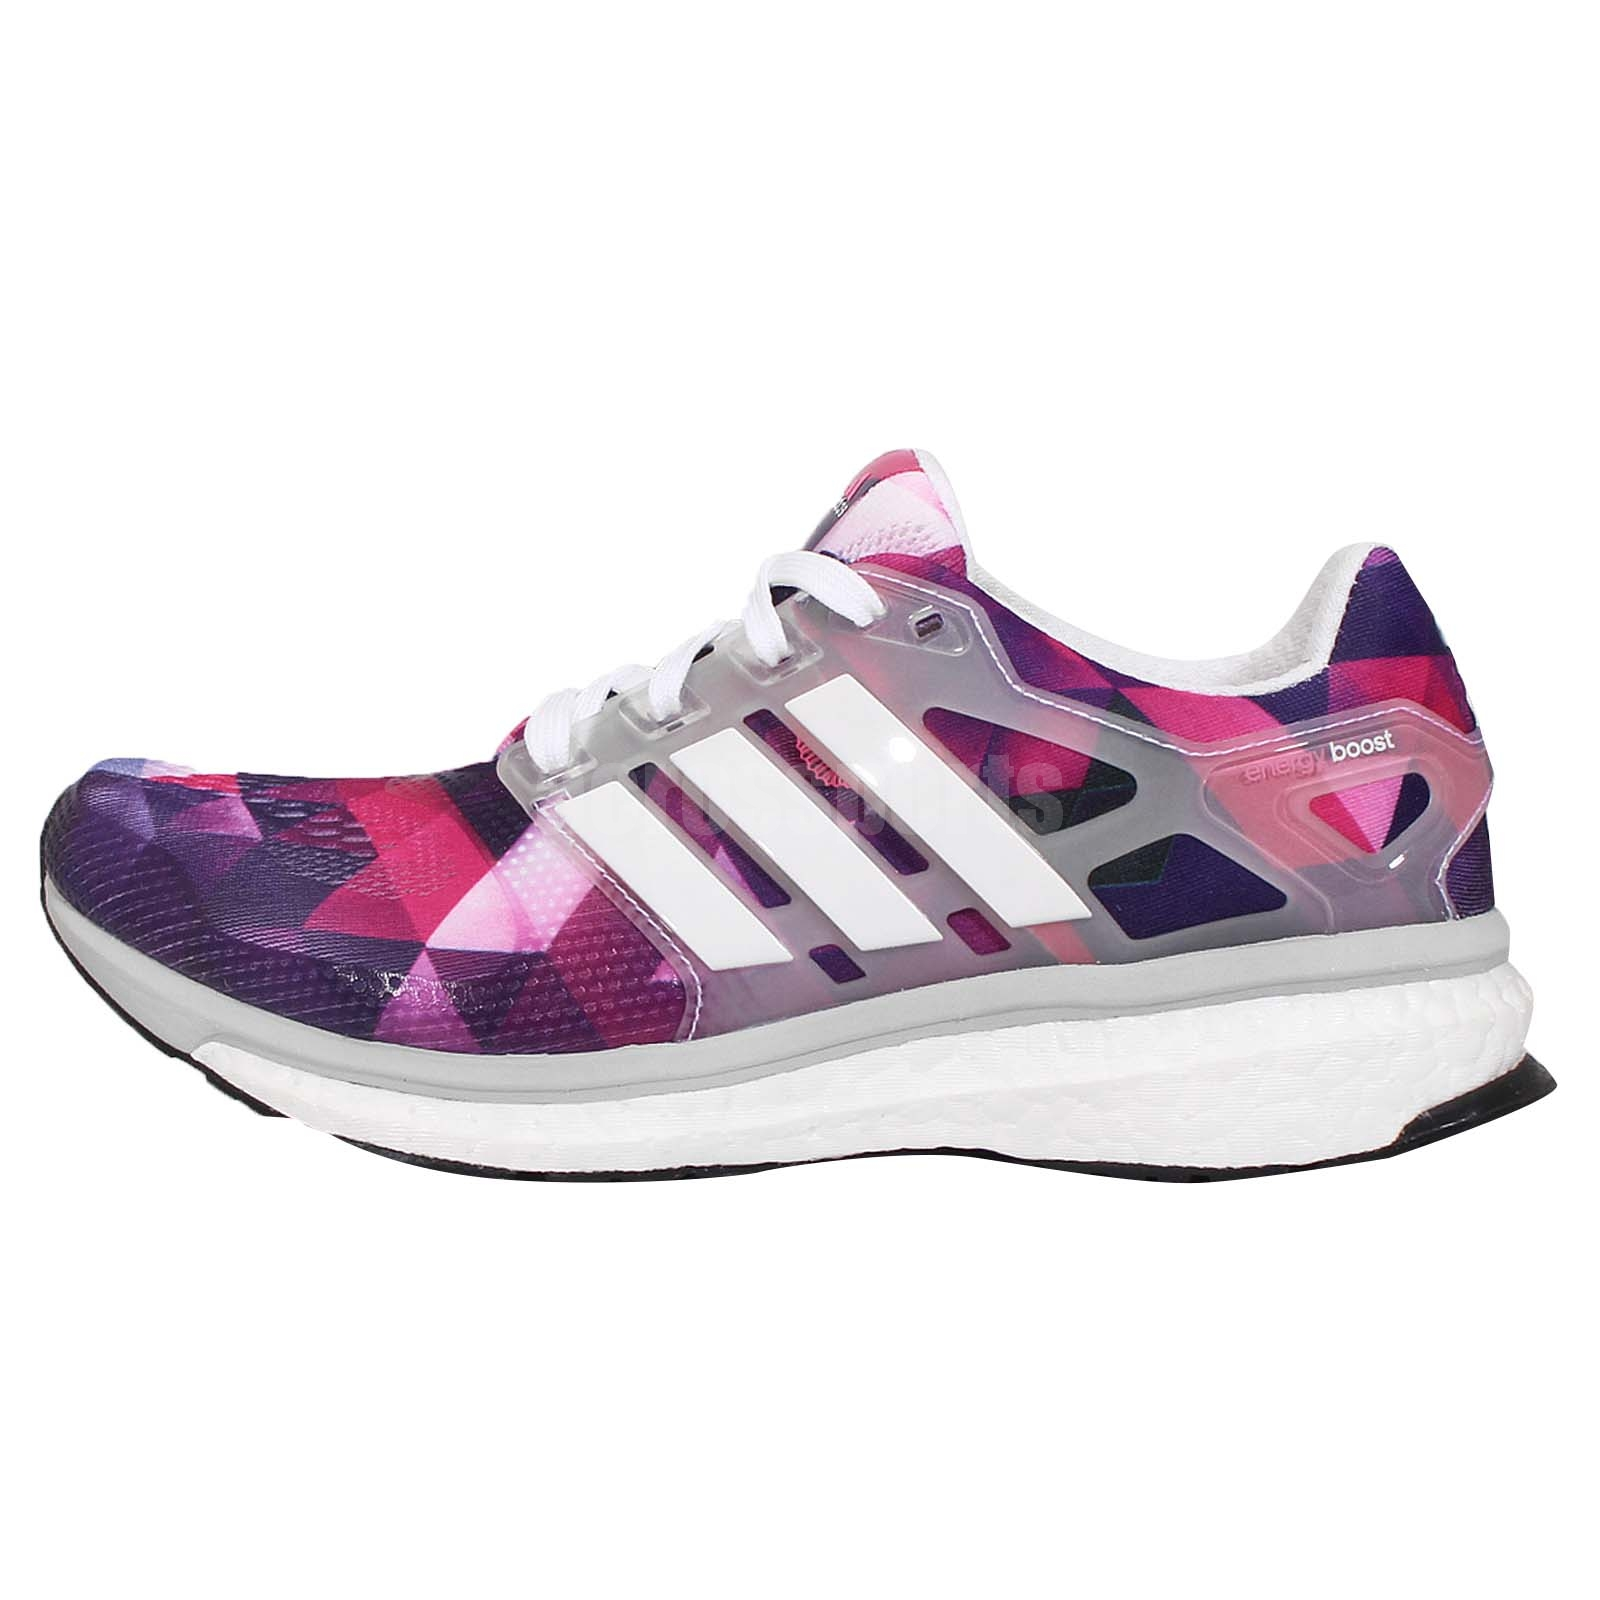 coupon code adidas energy boost purple 34a1c 7dc9b 34e98c49a